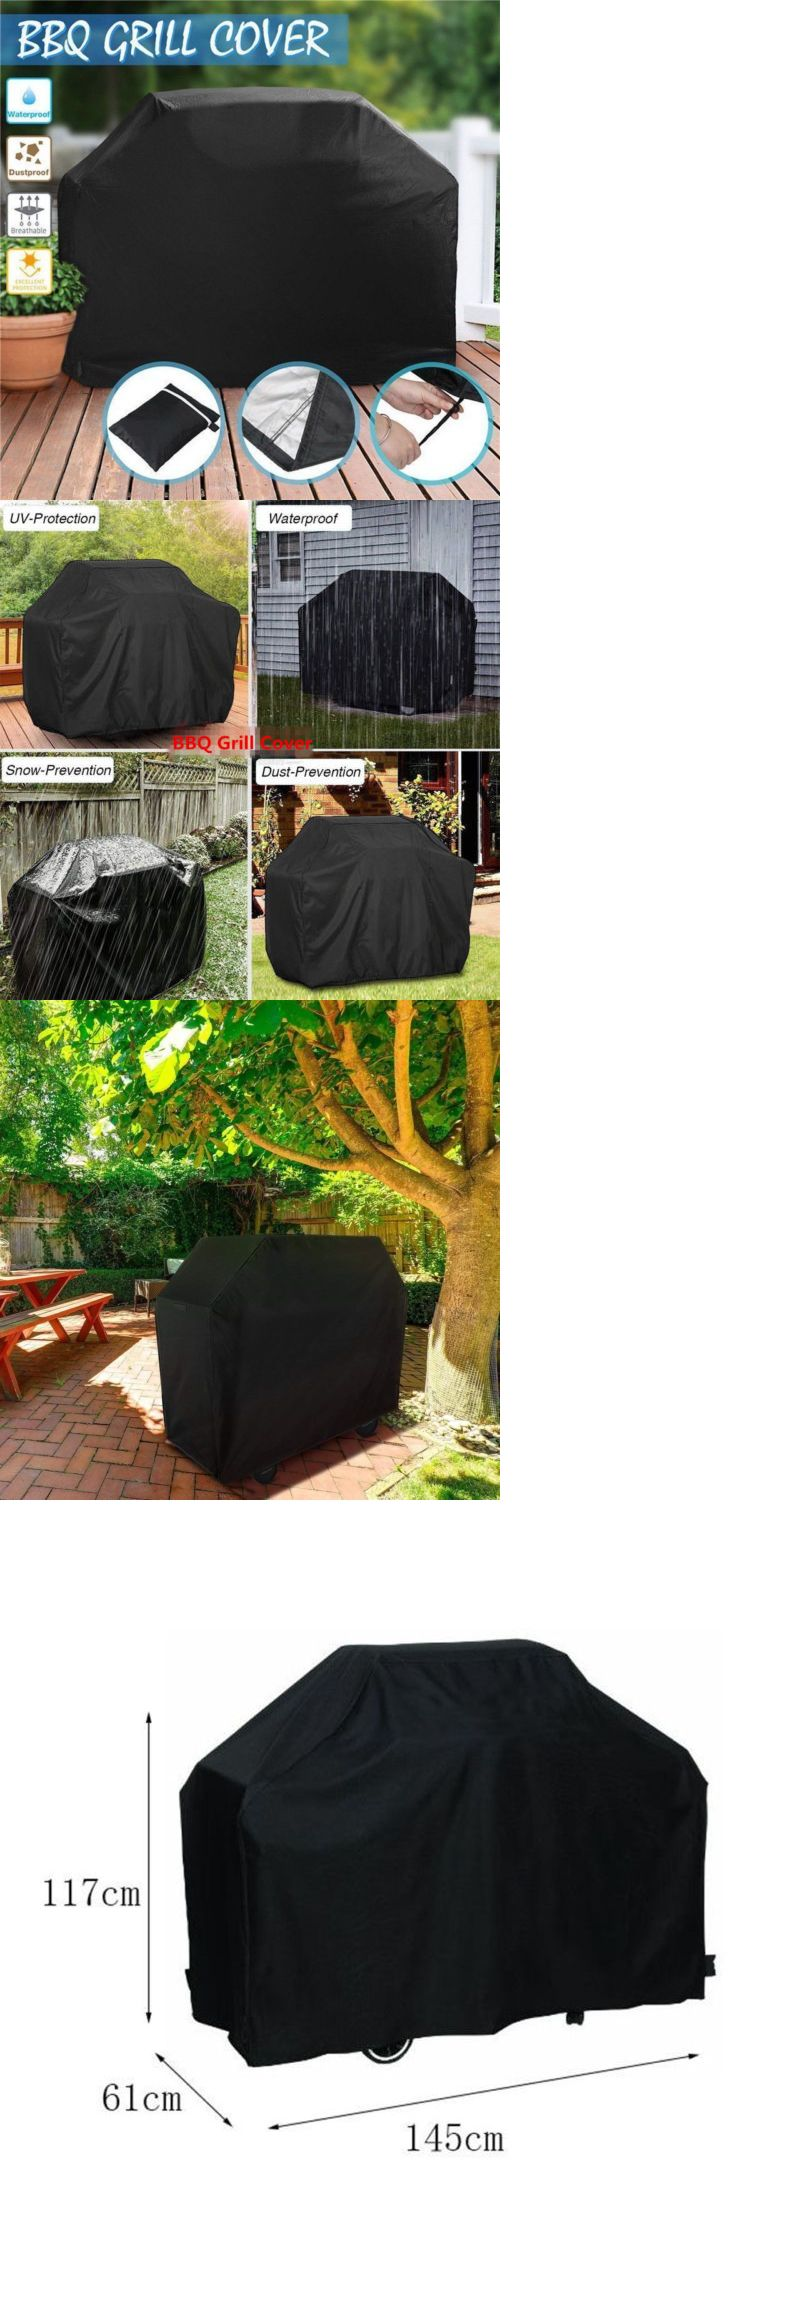 Details about 57 bbq grill cover gas barbecue heavy duty